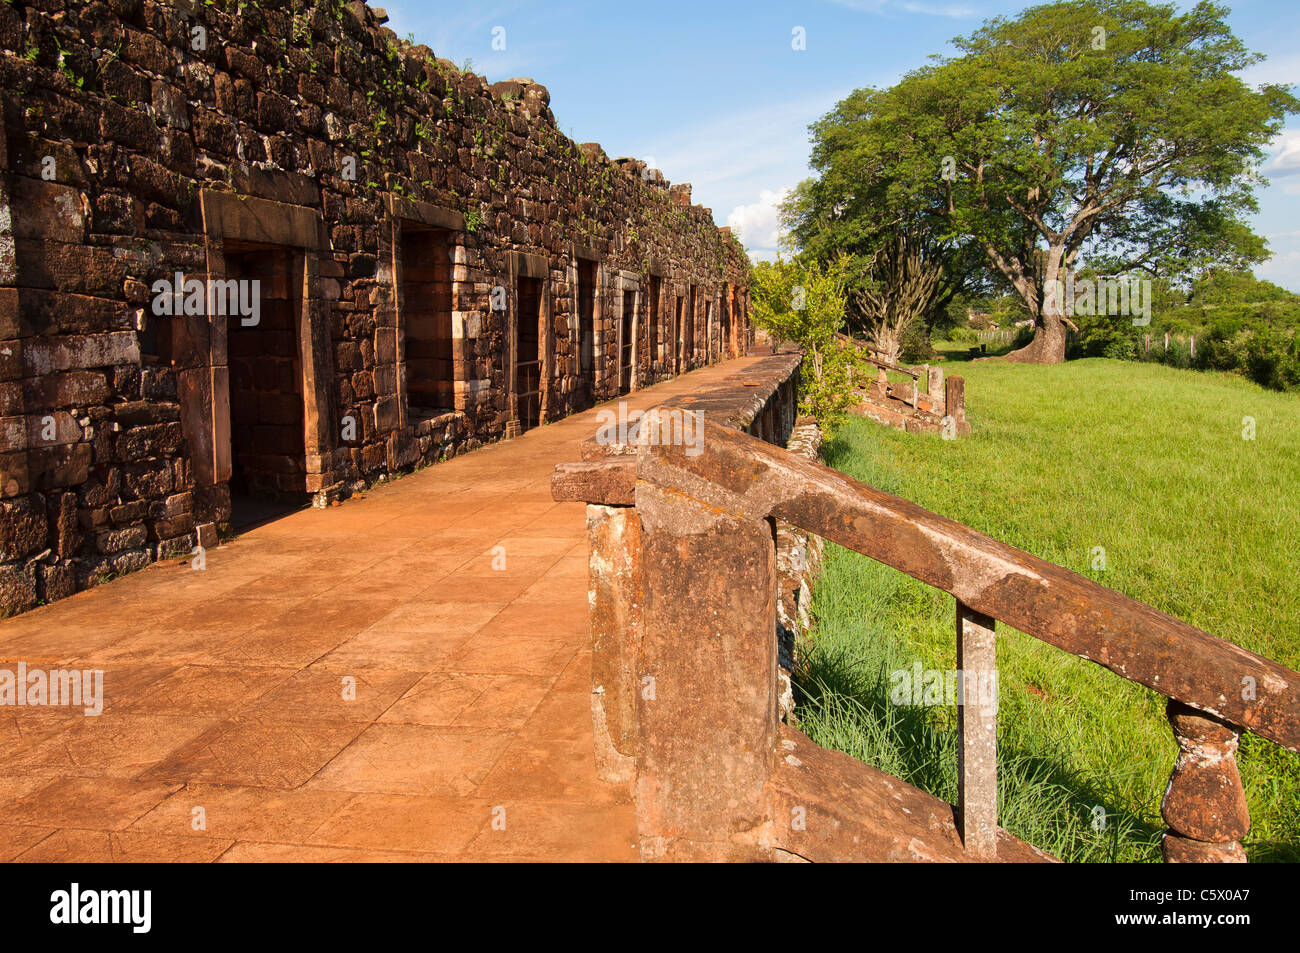 Ruins of the Jesuit reduction San Ignacio Mini, Cloister, Misiones Province, Argentina - Stock Image